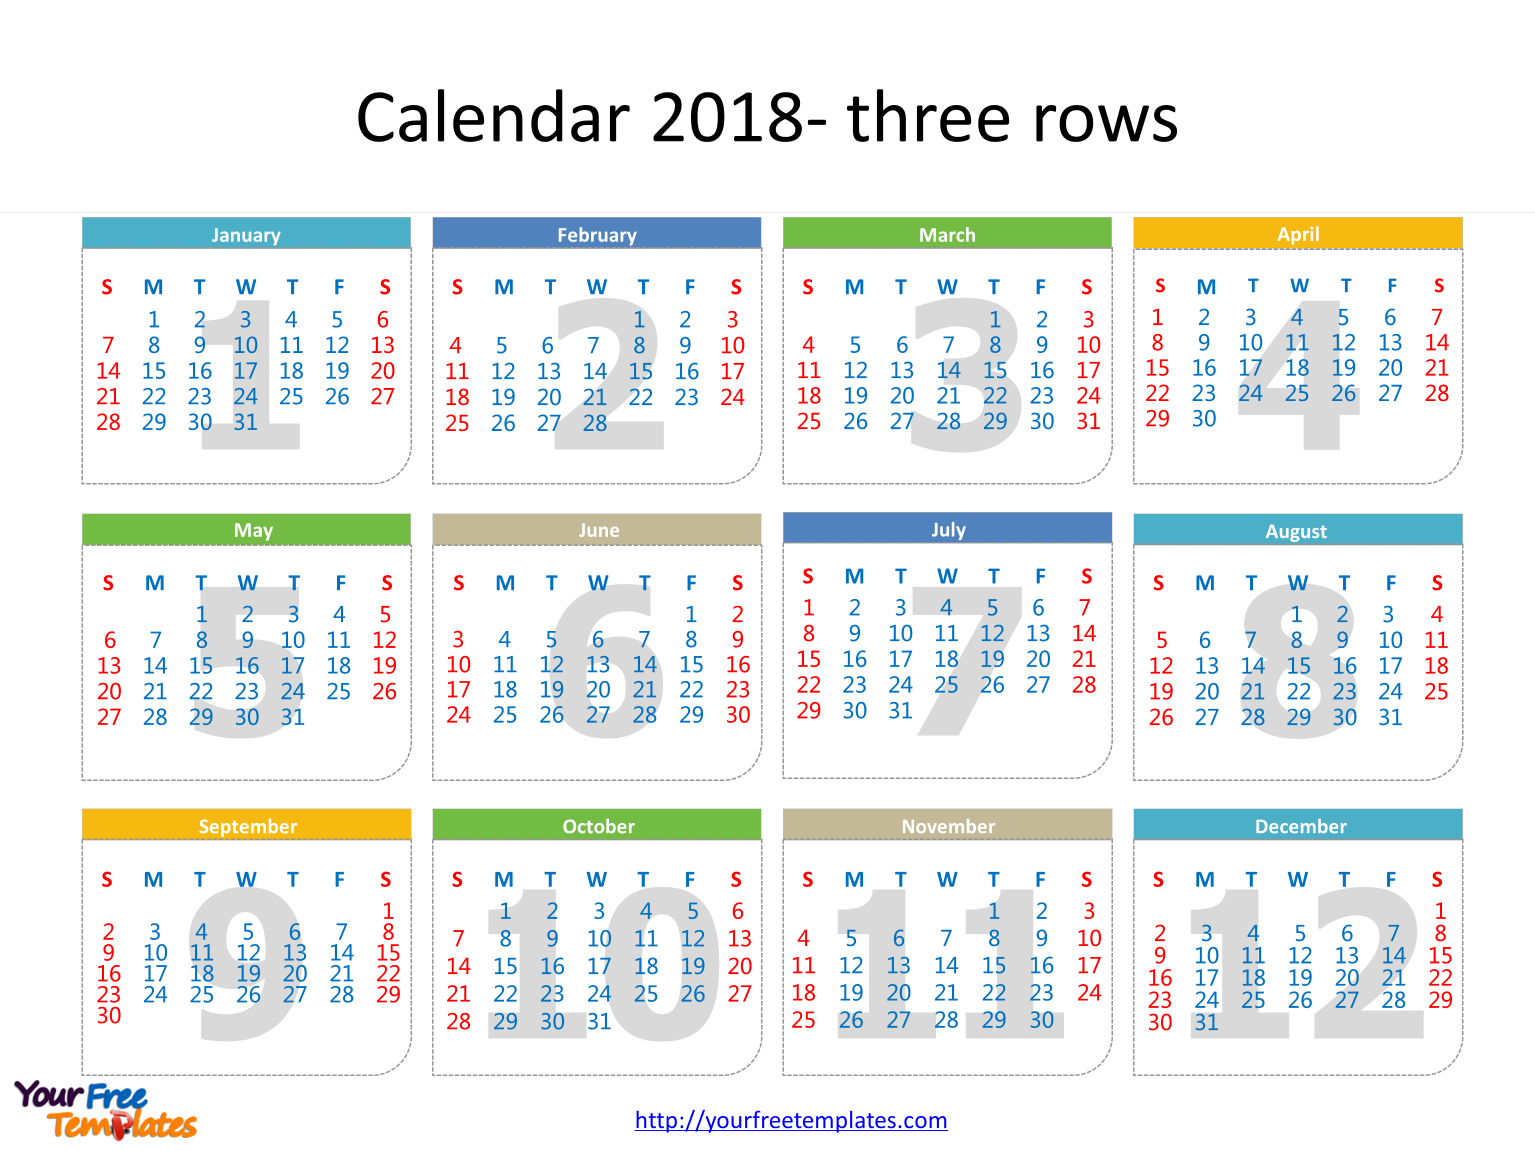 Calendar template 2018 free powerpoint templates for 3 day calendar template